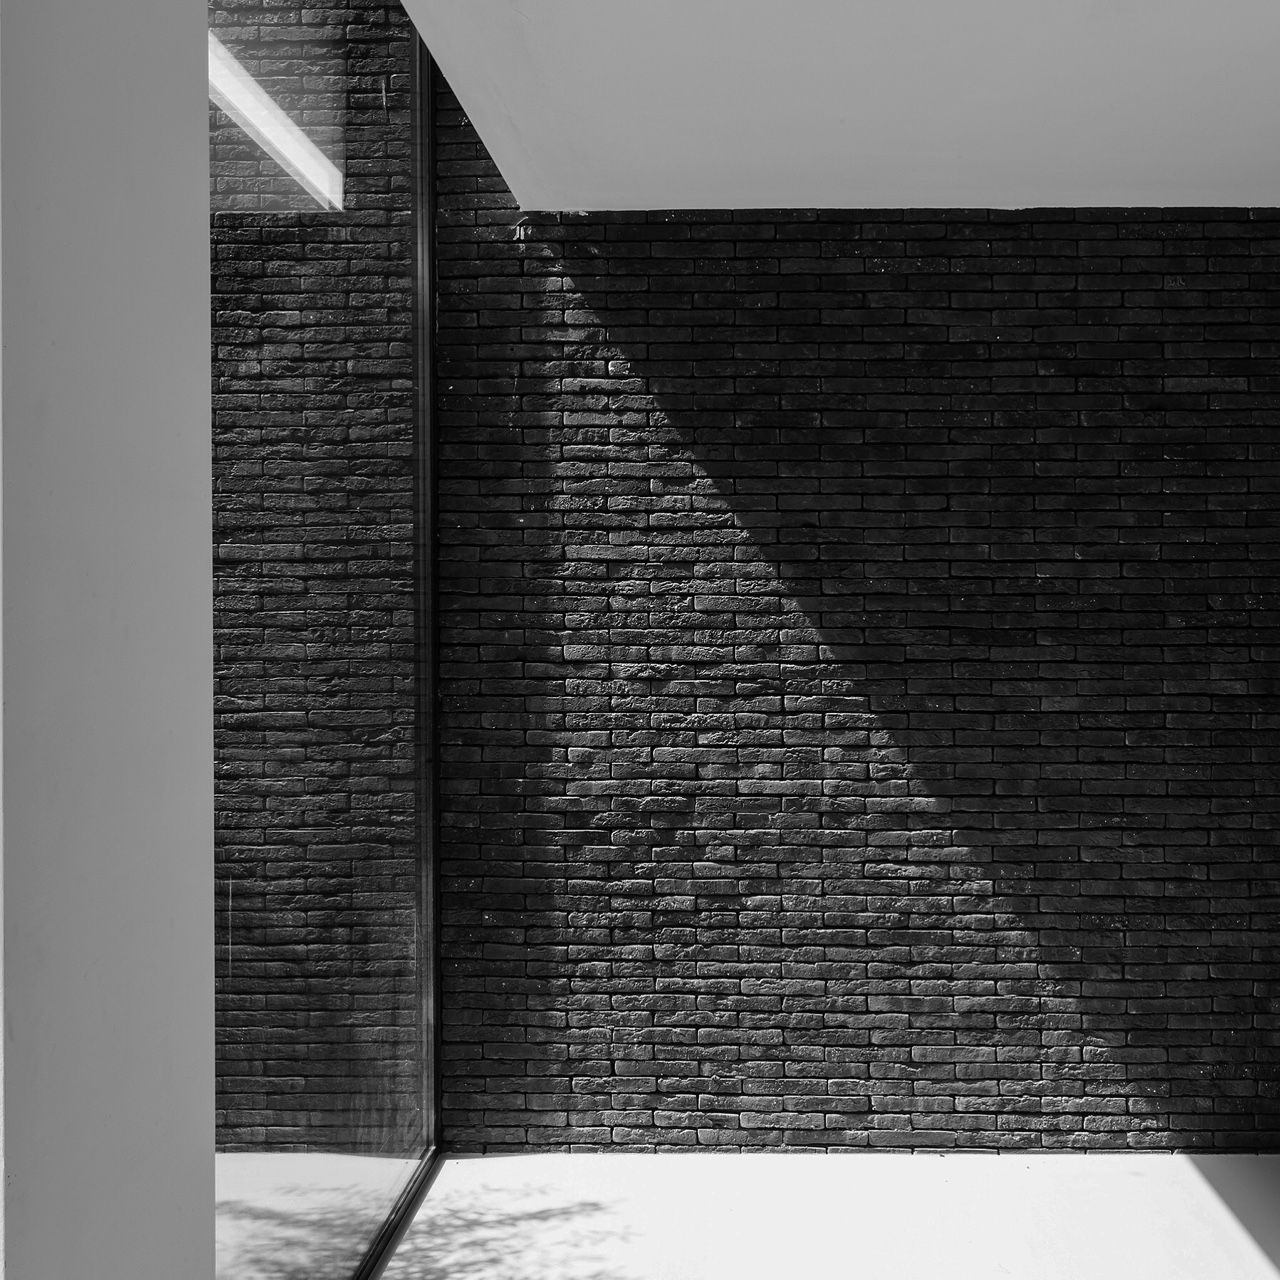 vhvh res claessens architecten brick pinterest bricks